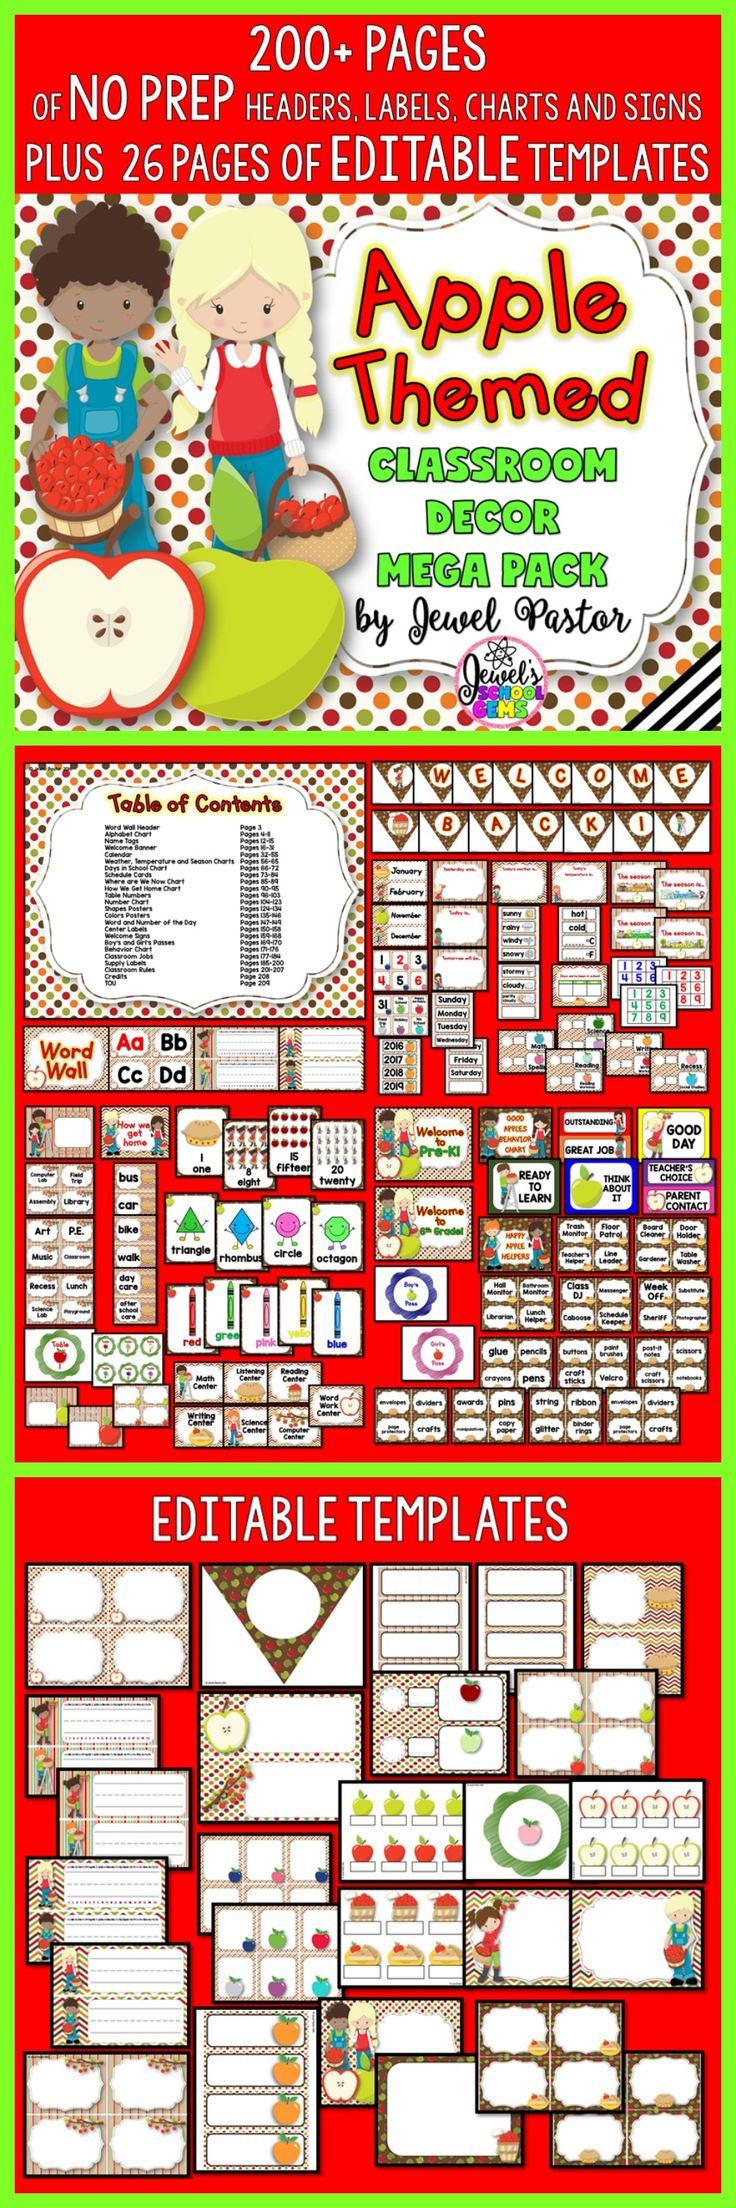 Apple Theme | Apple Theme Classroom Decor | Welcome your students to an applicious classroom with this Apple Themed Classroom Decor Mega Pack. It comes with 200+ pages of NO PREP HEADERS, LABELS, CHARTS AND SIGNS plus 26pages of EDITABLE PARTS/TEMPLATES. Included is a PowerPoint file with blank templates. You can easily insert a text box and type in the text you want or need. Buy it from Jewel Pastor on TpT today! | Apple Class Decor | Bulletin Boards | Back to School